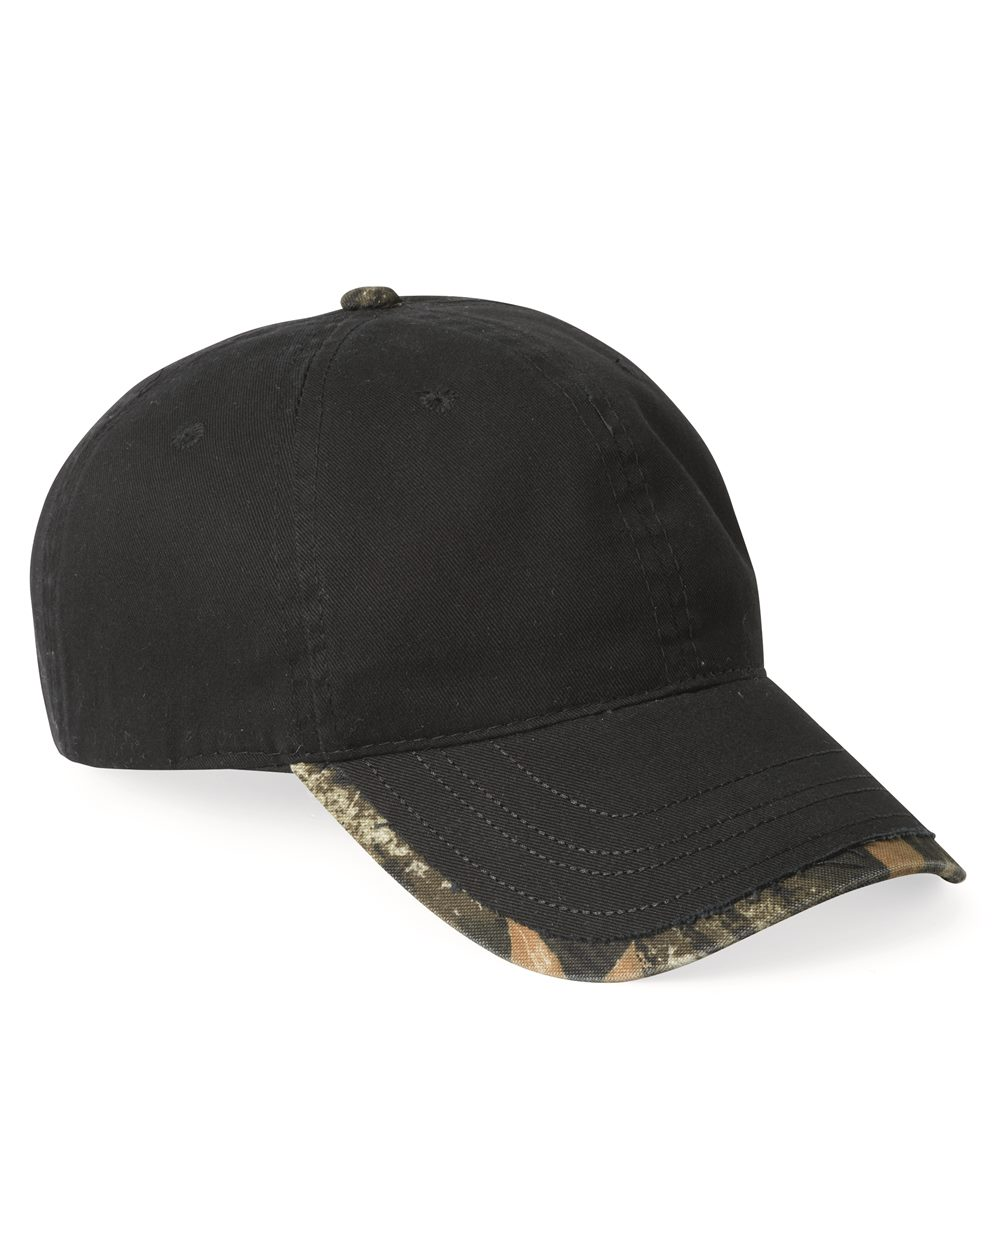 Outdoor Cap GWTC200 - Frayed Trim Camo Cap